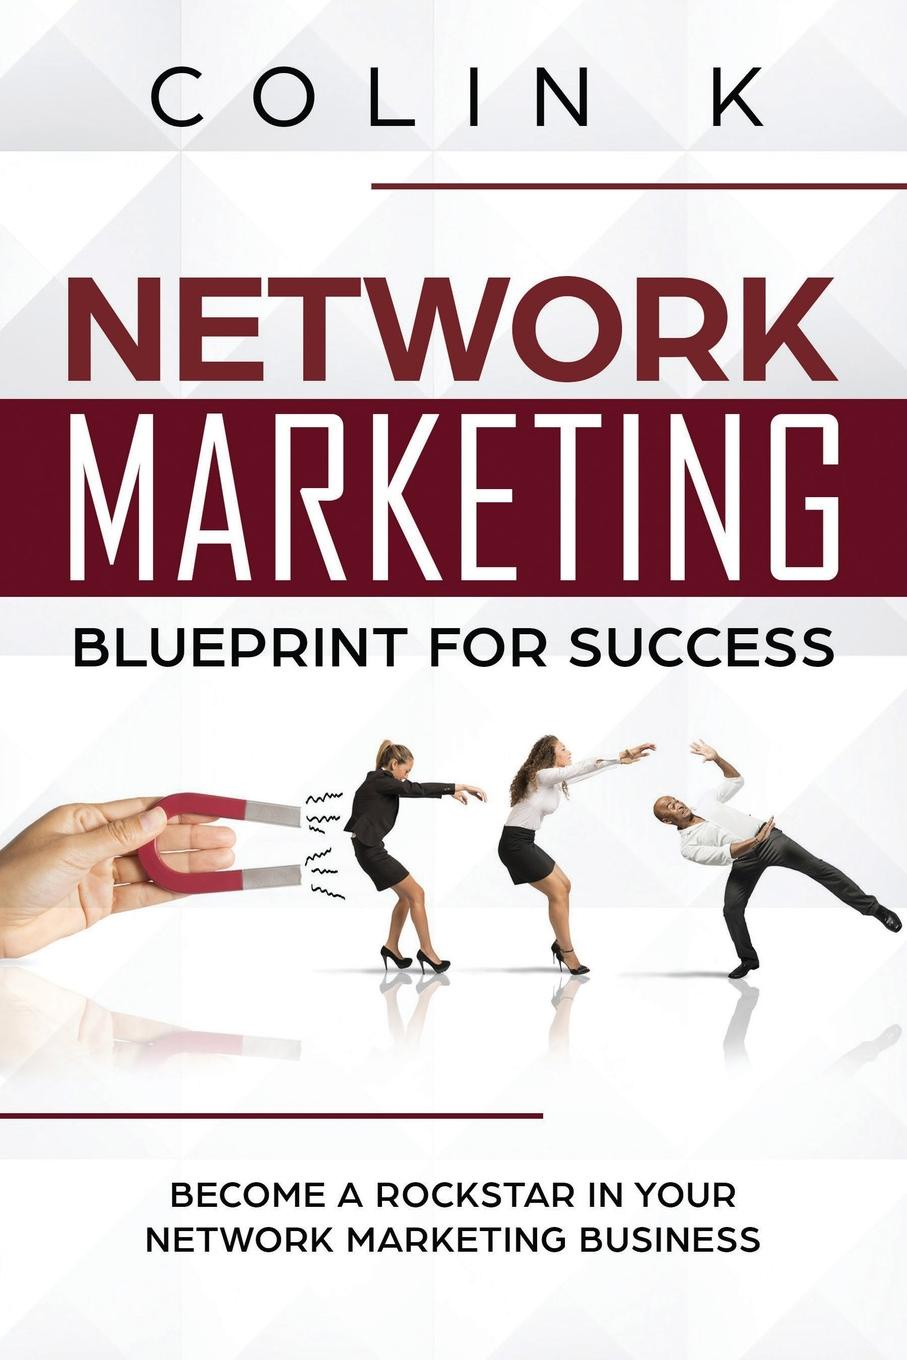 Colin K Network Marketing Blueprint for Success. Become a Rockstar in Your Network Marketing Business gunnar schuster network marketing enrichment or deception